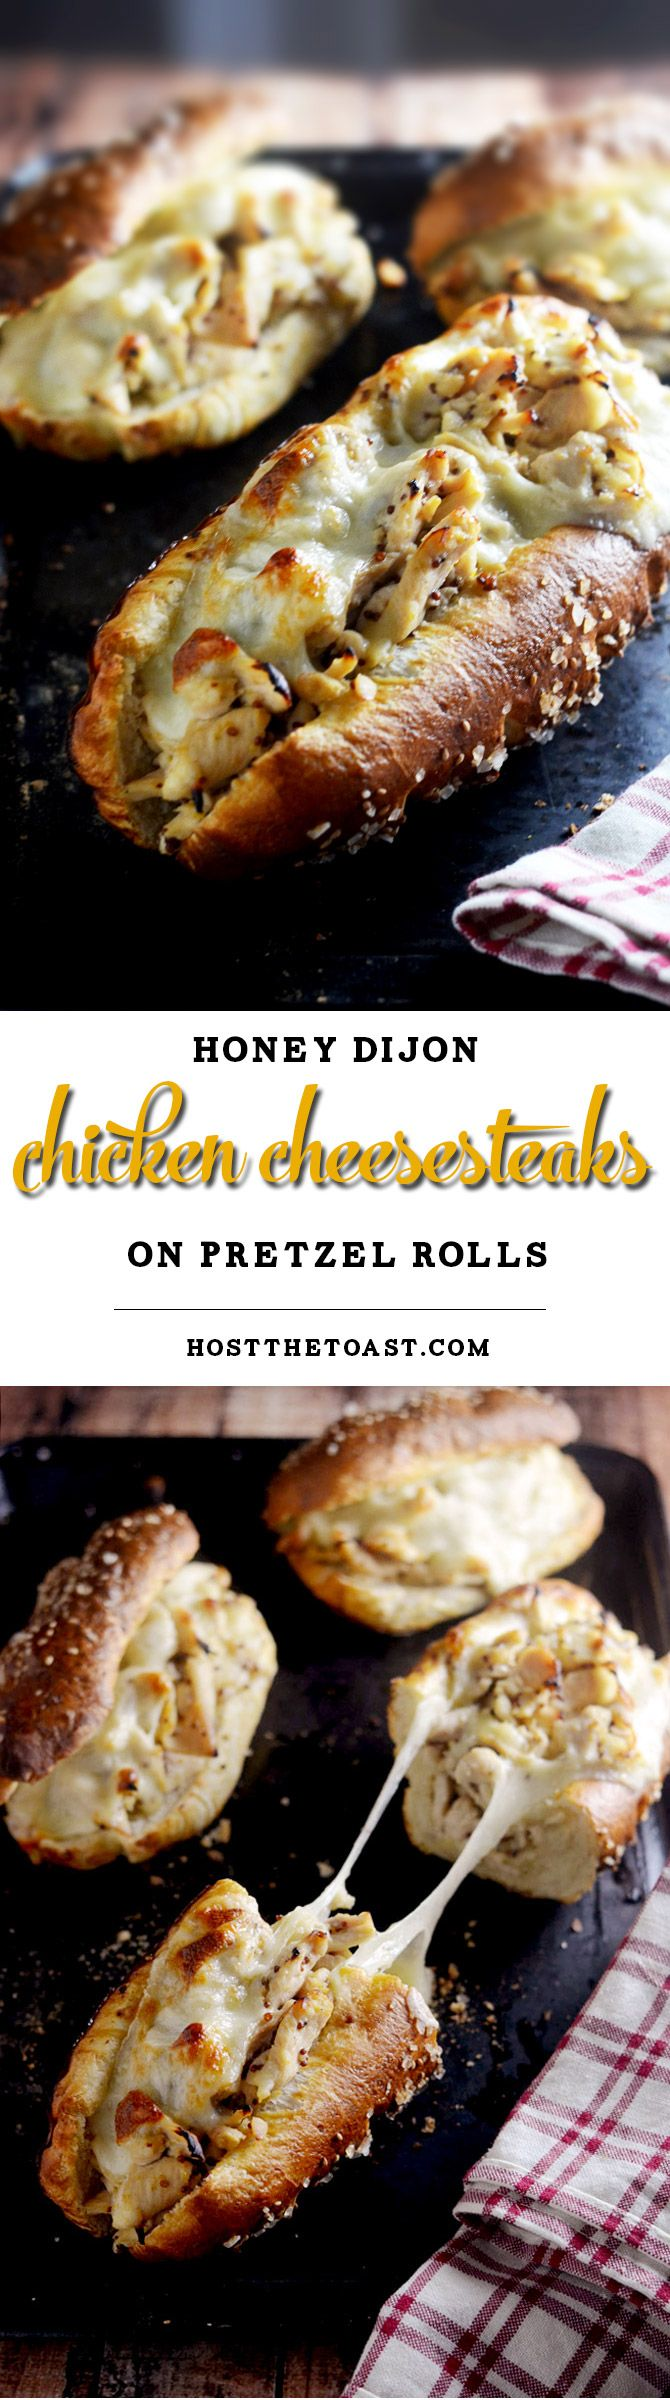 Honey Dijon Chicken Cheesesteaks with Pretzel Rolls. You need to make these ASAP. The pretzel rolls are made with frozen bread and baking soda! | hostthetoast.com